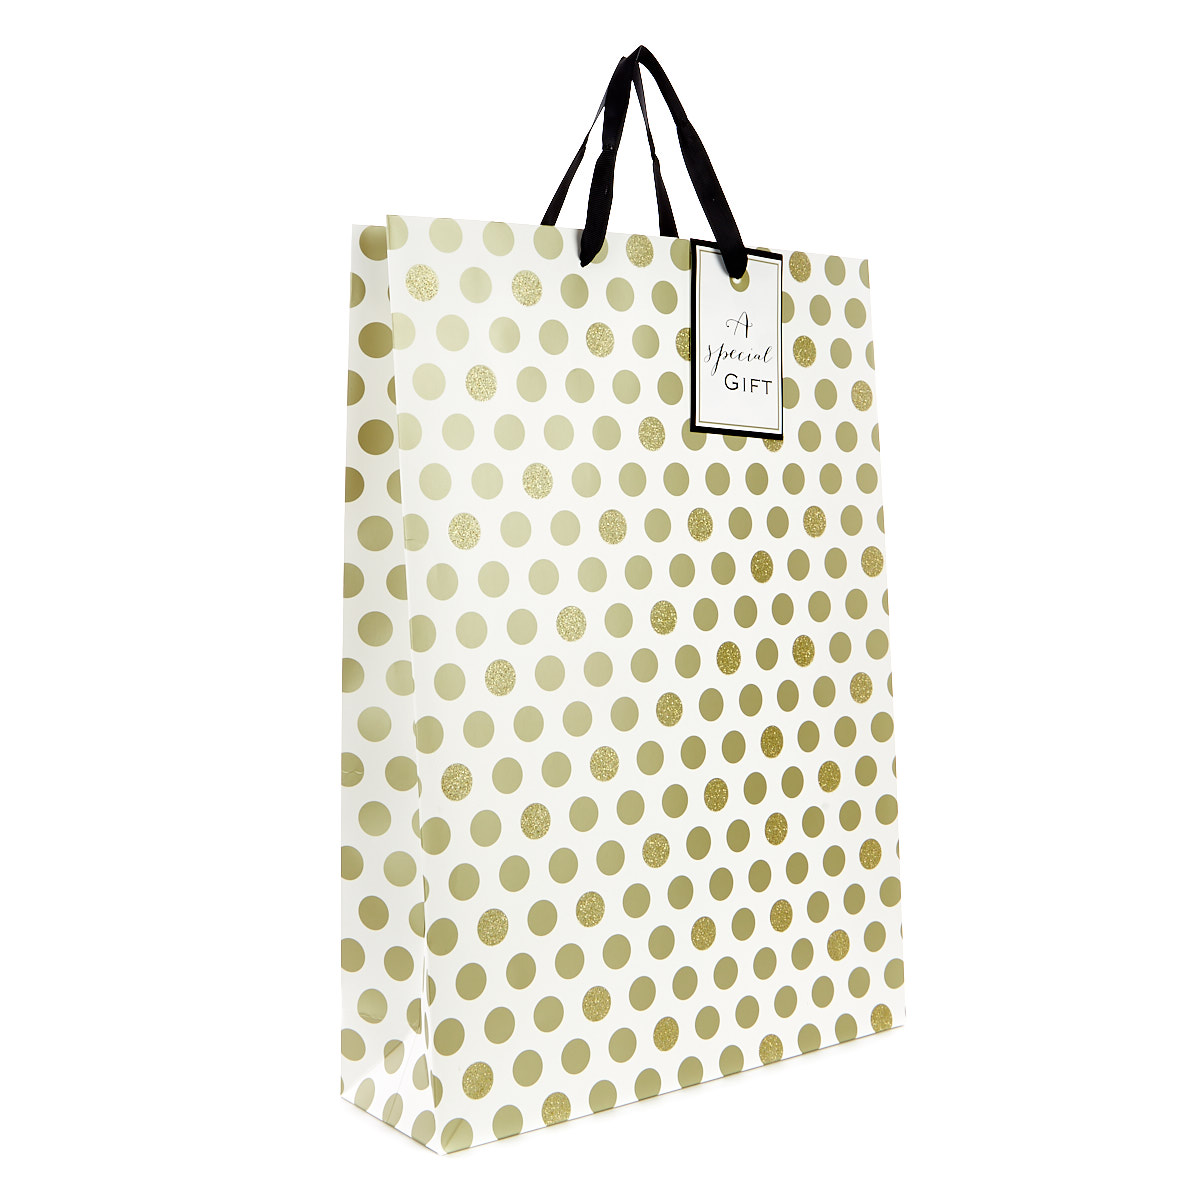 Large Gold Sparkle Polka Dot Gift Bag - A Special Gift